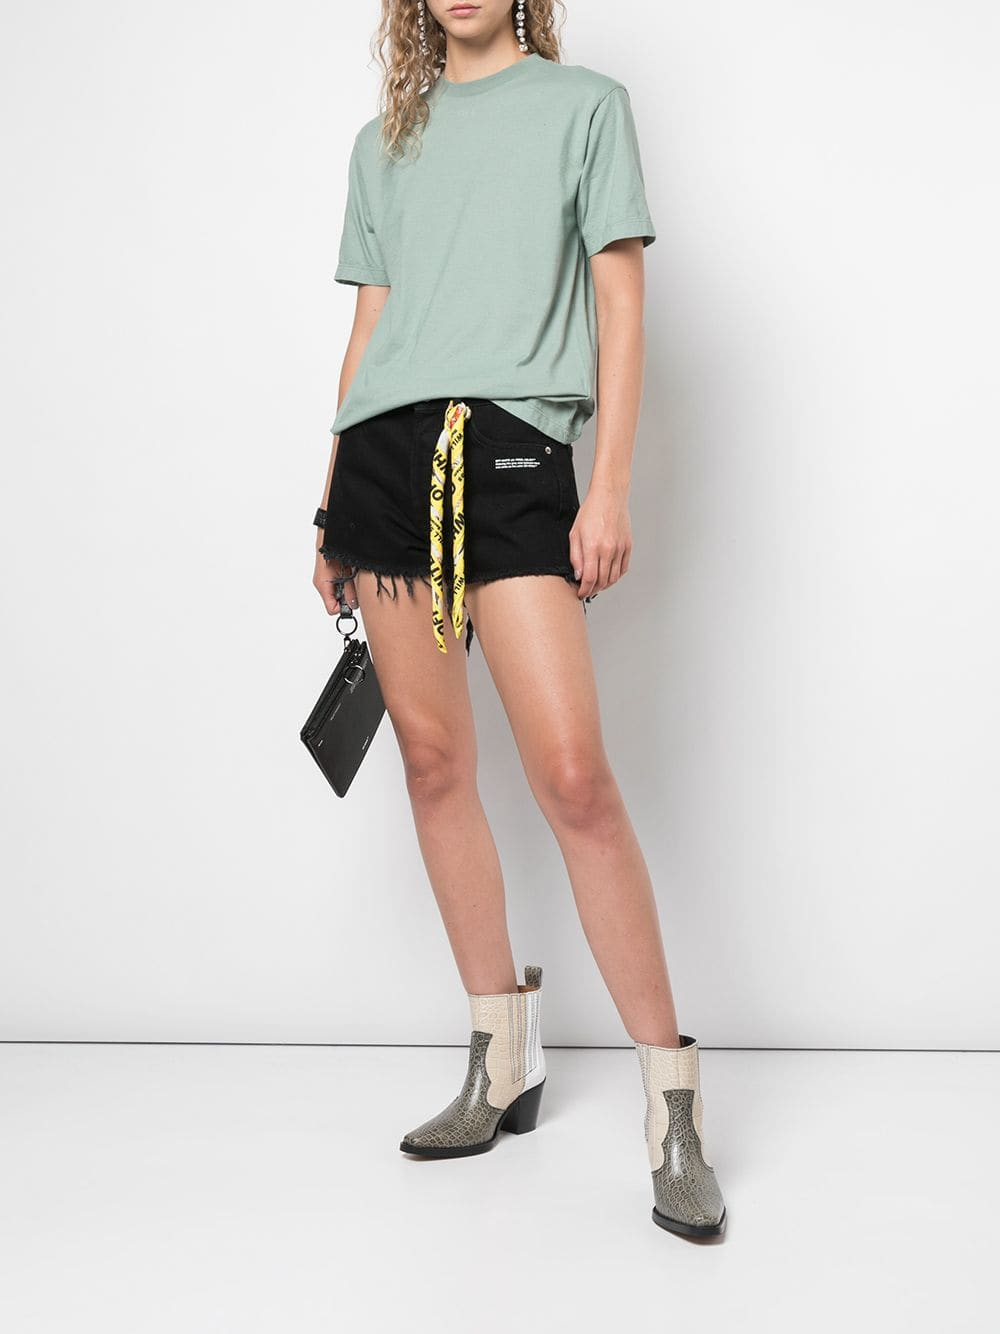 OFF-WHITE WOMEN SHORTS VINTAGE